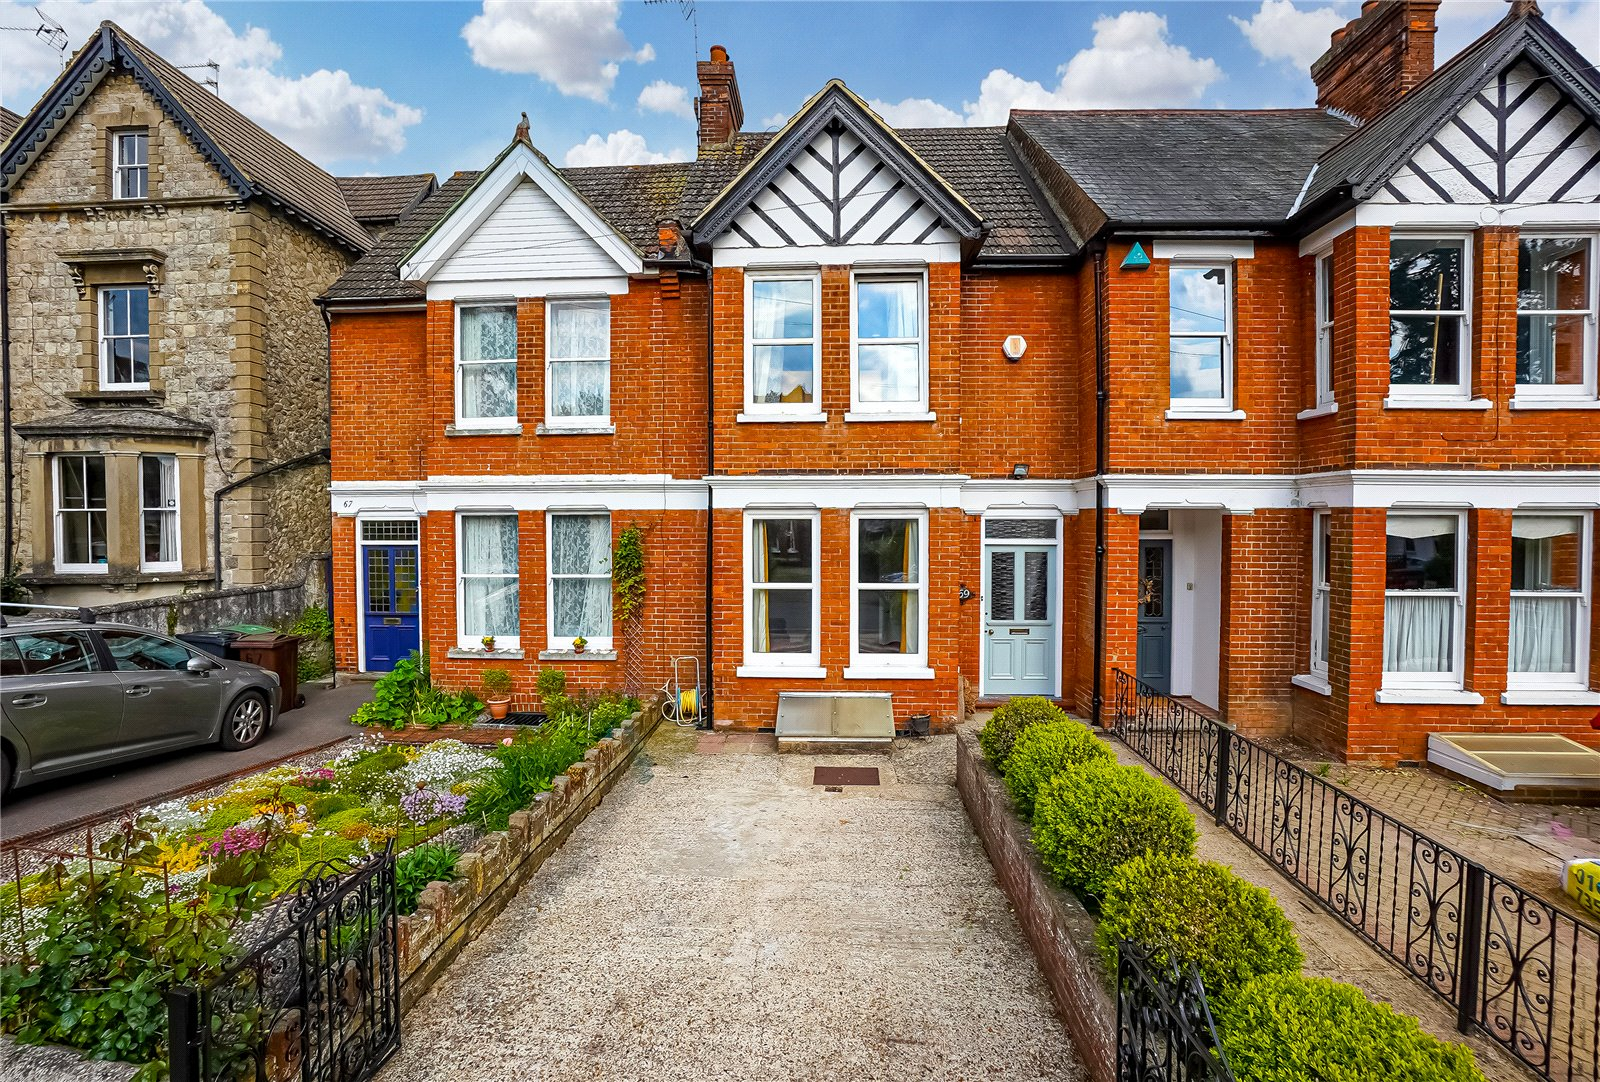 4 bed house for sale in Bower Mount Road, Maidstone - Property Image 1